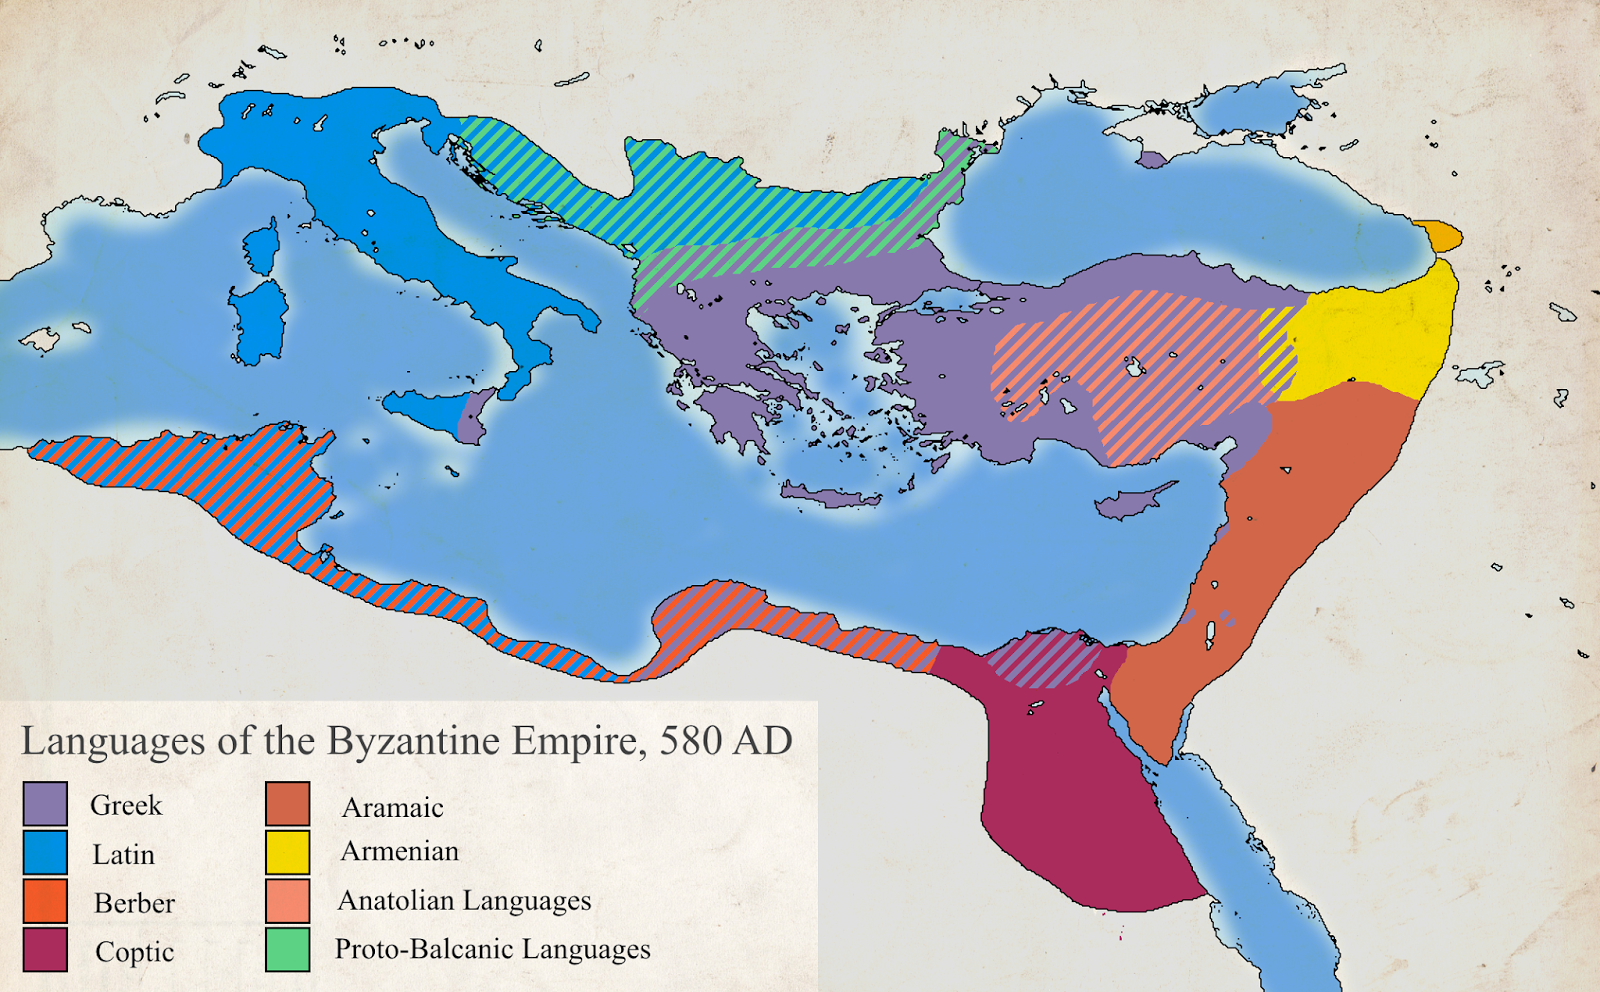 Languages of the byzantine empire 580 ad byzantine empire and httpvividmaps201710languages of byzantine empire 580 adml publicscrutiny Choice Image